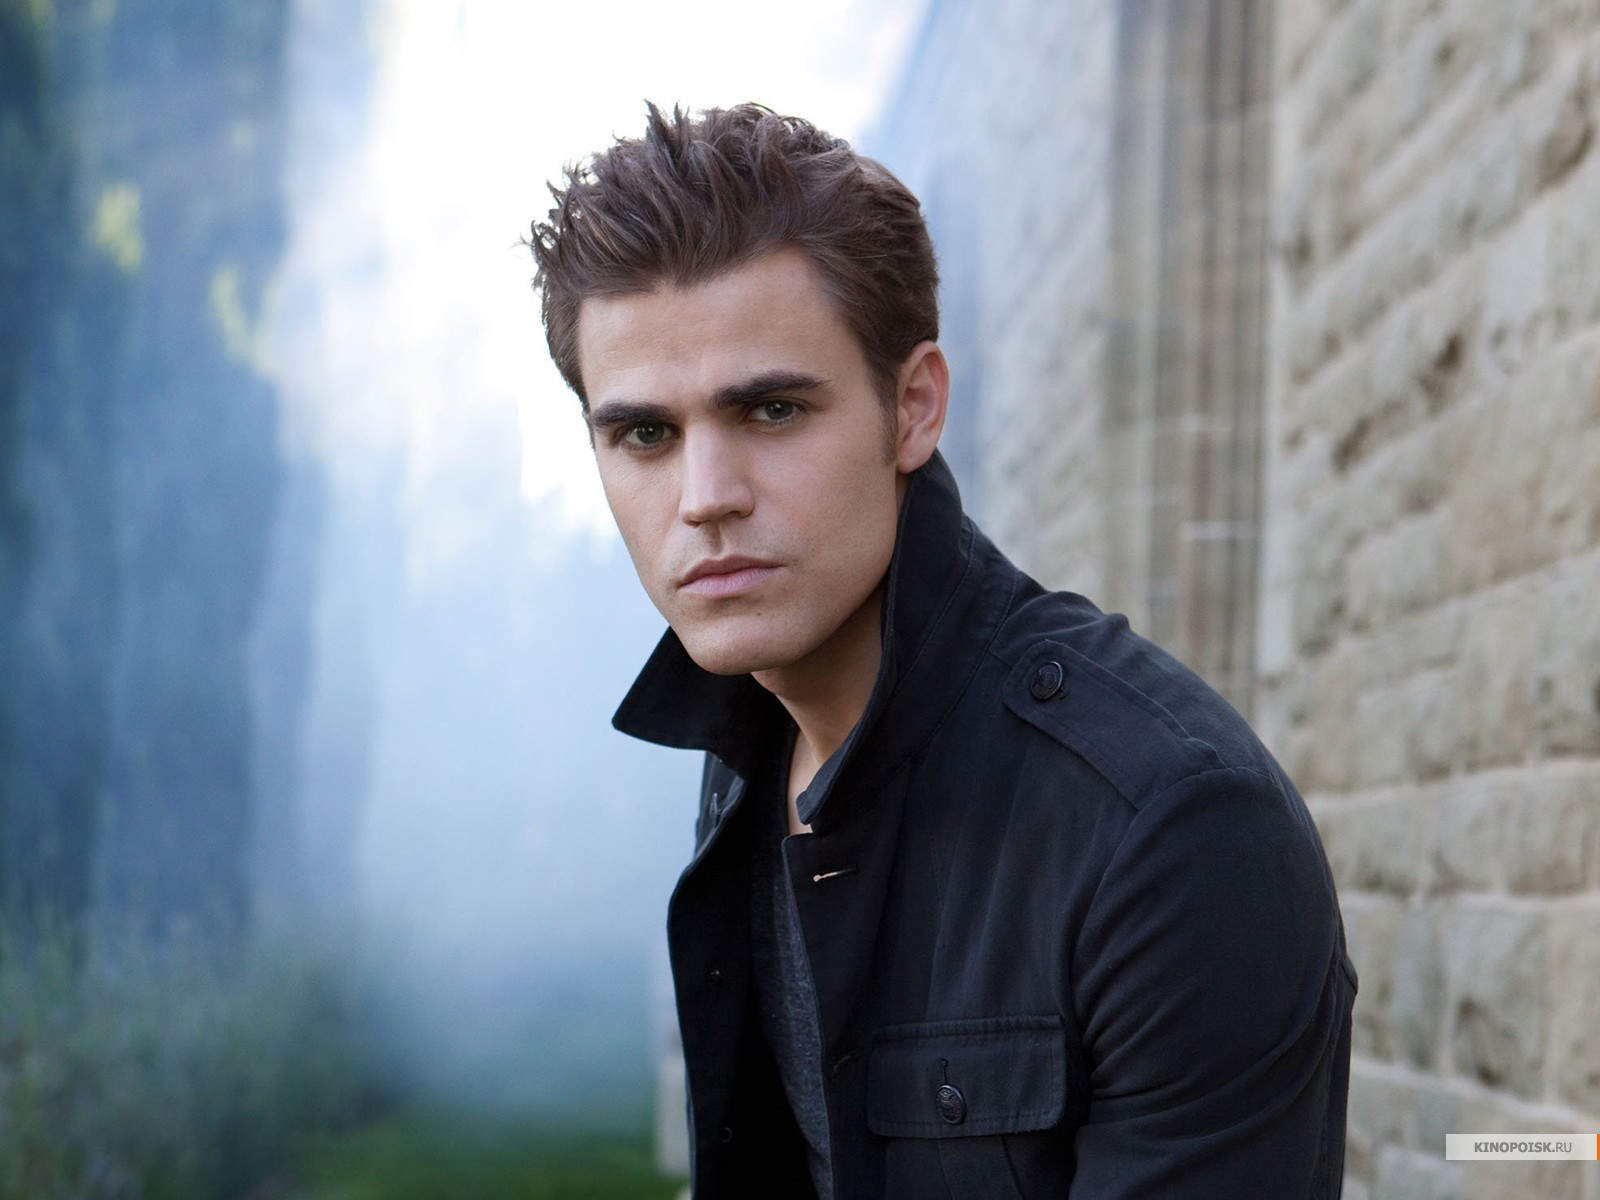 http://images2.fanpop.com/images/photos/8500000/Paul-paul-wesley-8513657-1600-1200.jpg